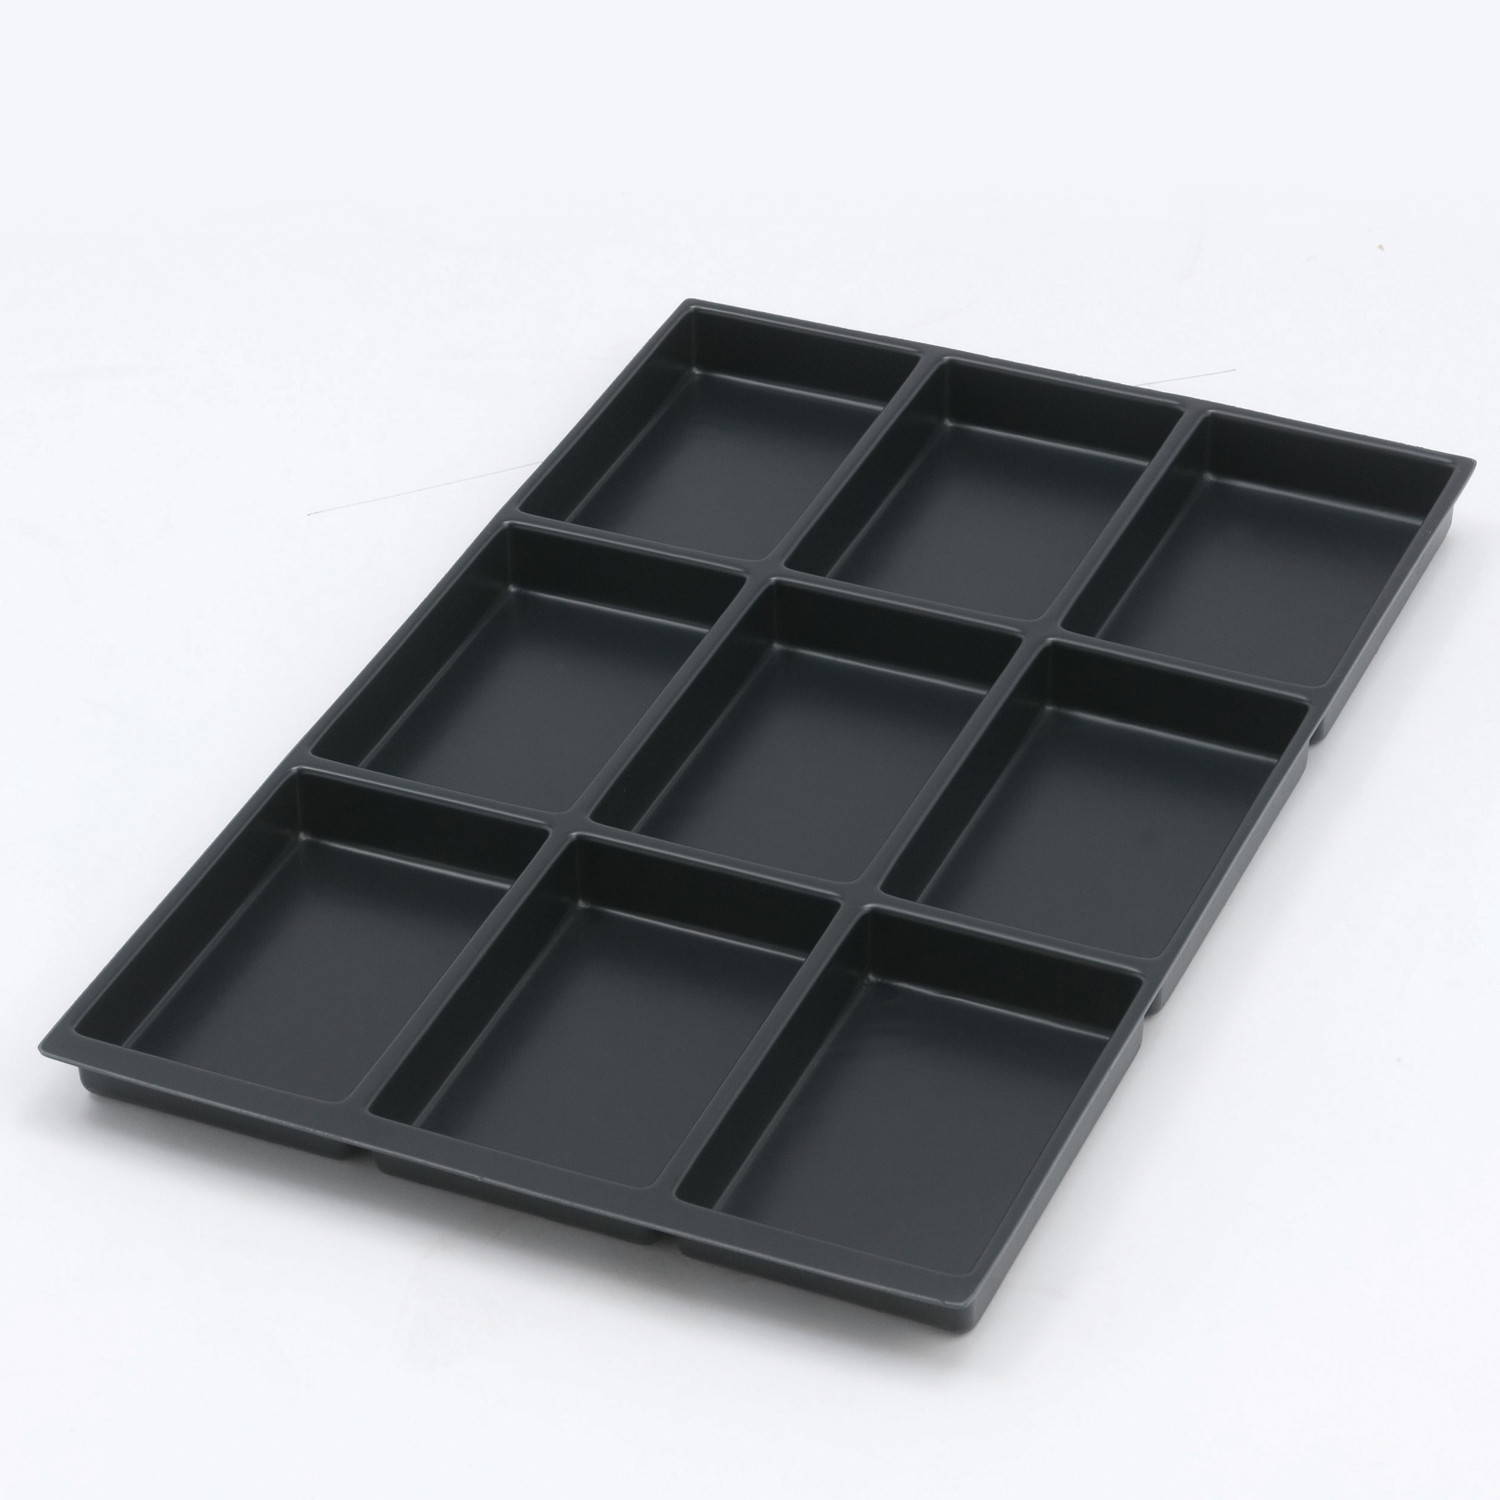 Plastic Multidrawer Insert Tray - 9 Compartments